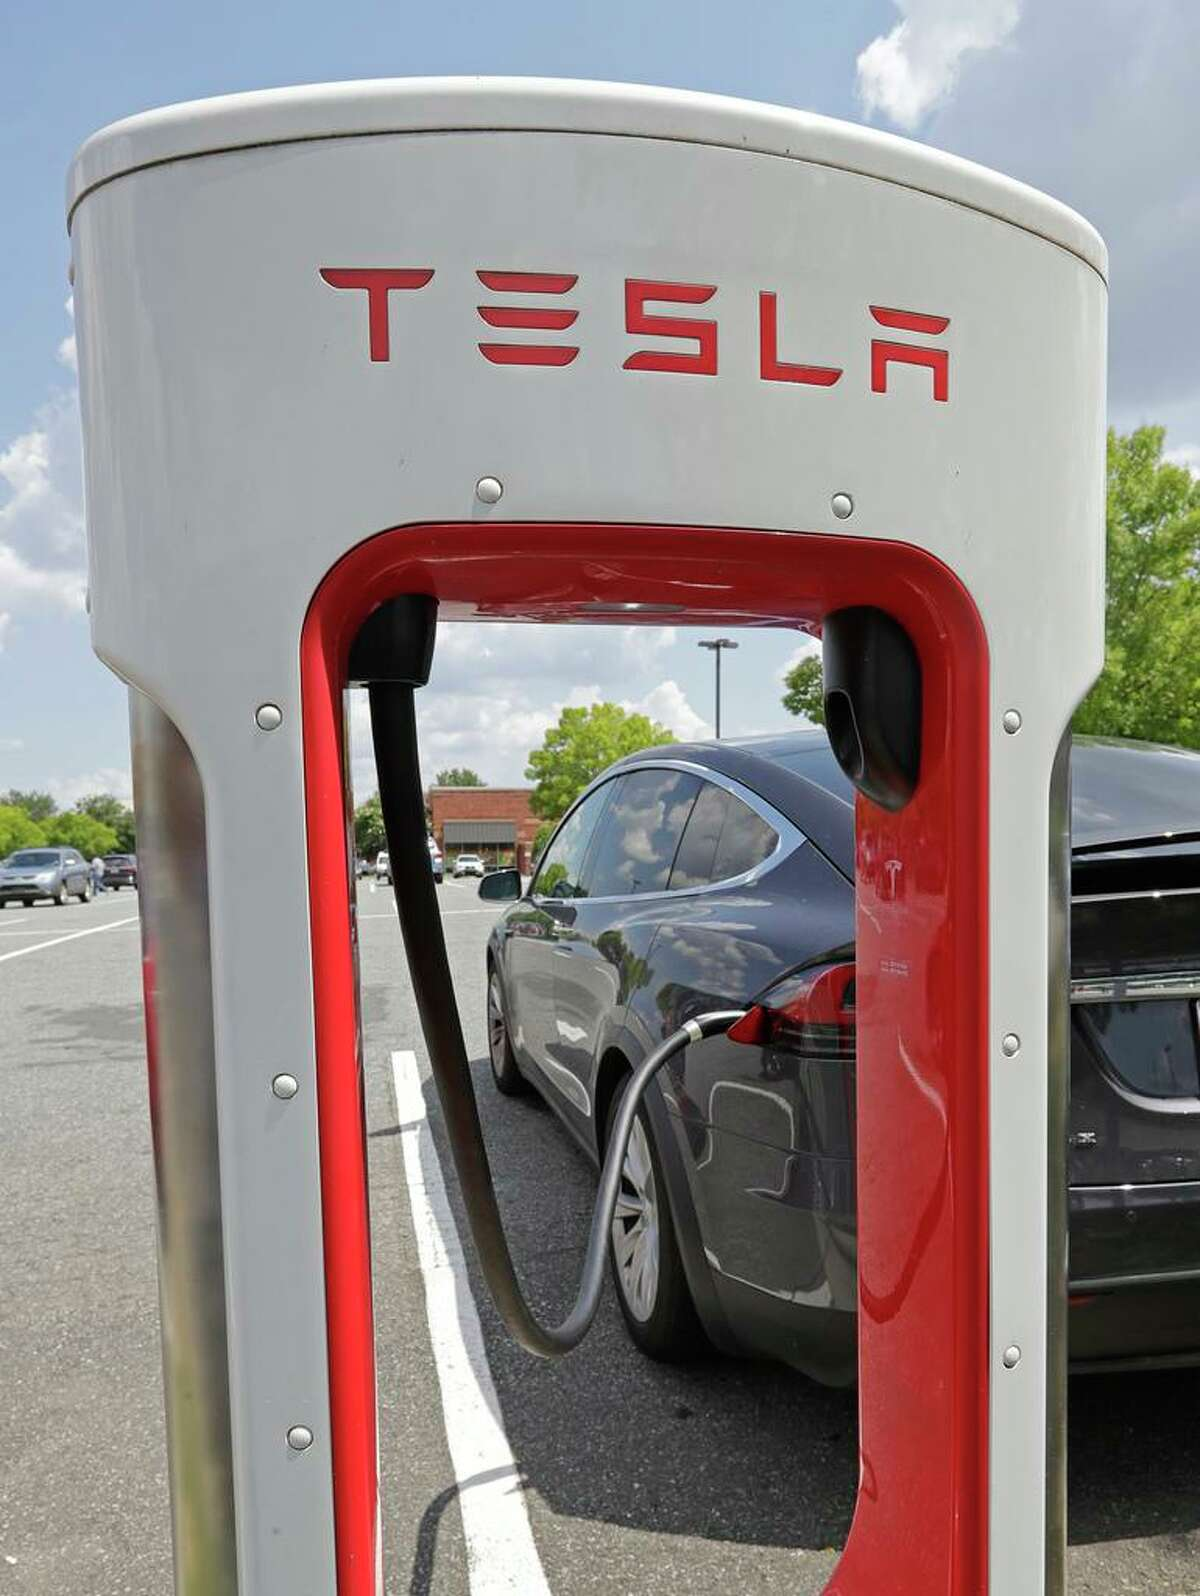 A Tesla vehicle is shown charging at a Tesla Supercharger site in Charlotte, N.C., Friday, July 19, 2019. (AP Photo/Chuck Burton)